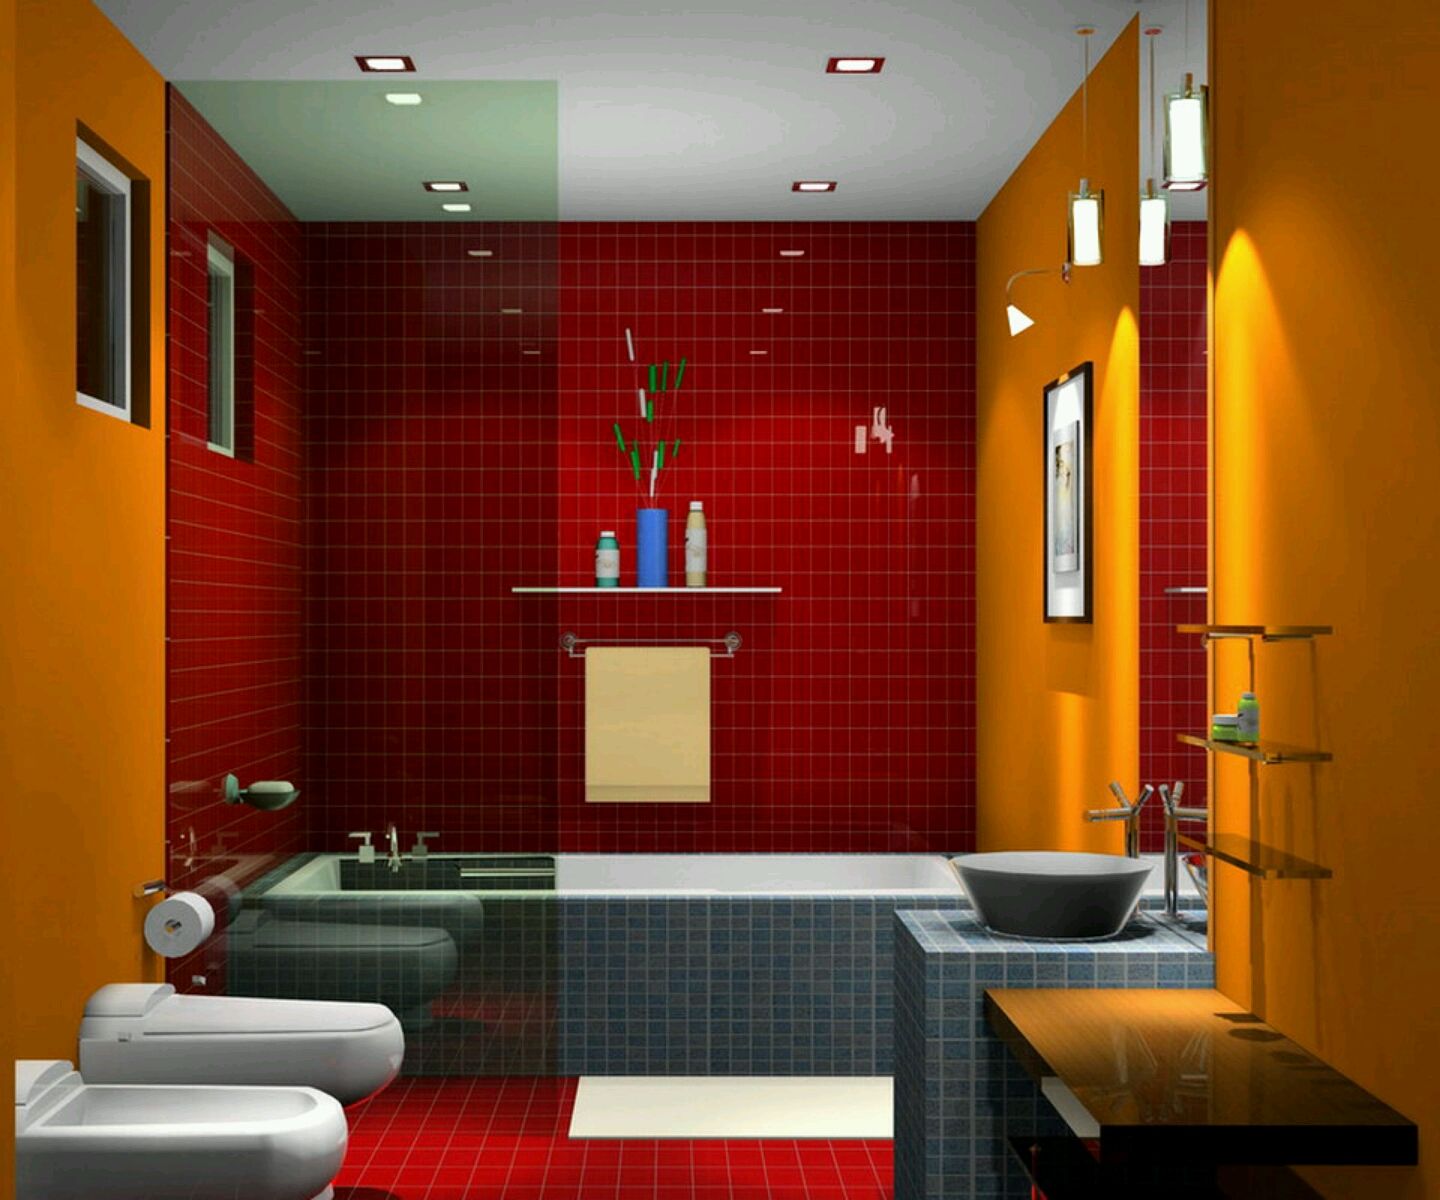 New home designs latest luxury bathrooms designs ideas for Pakistani simple house designs